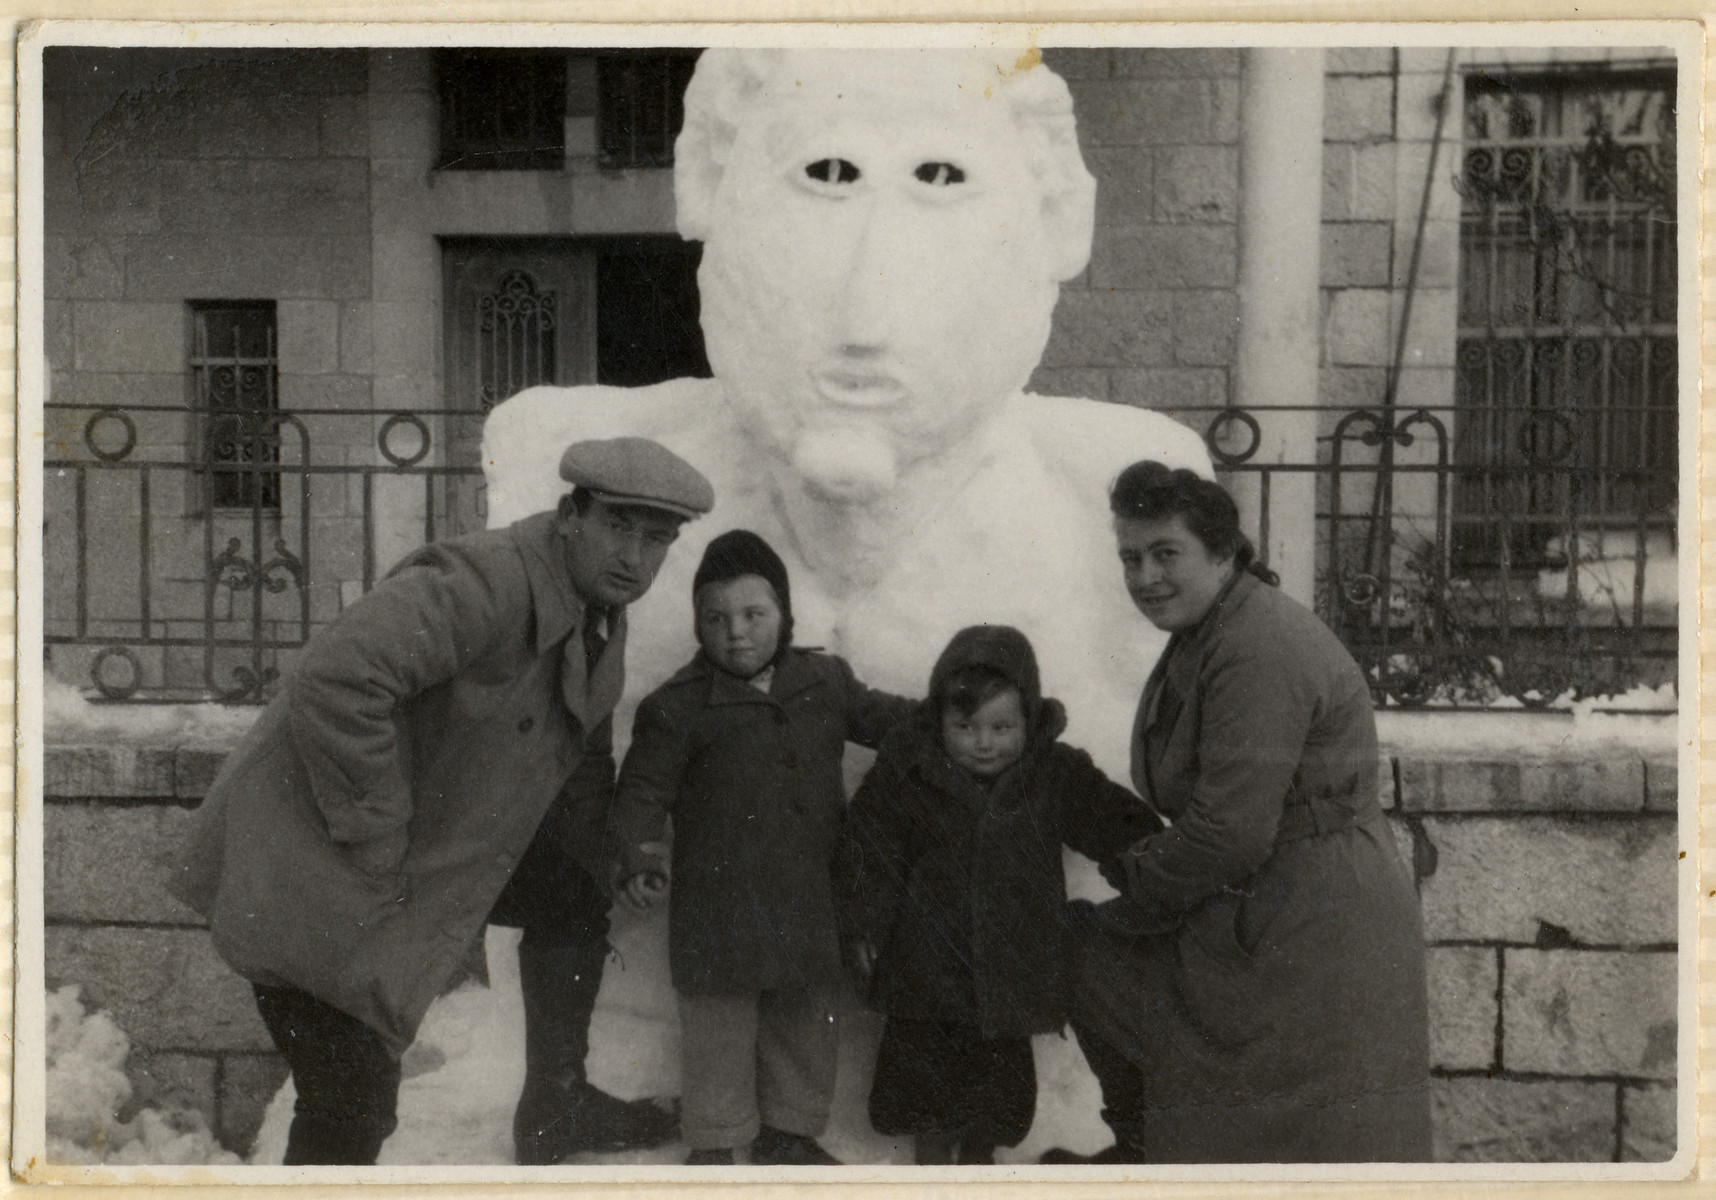 The Kohl family poses in front of a large snow sculpture in the Hofgeismar displaced persons camp.  From left to right are Emil, Miriam, Sam and Dora Kohl.